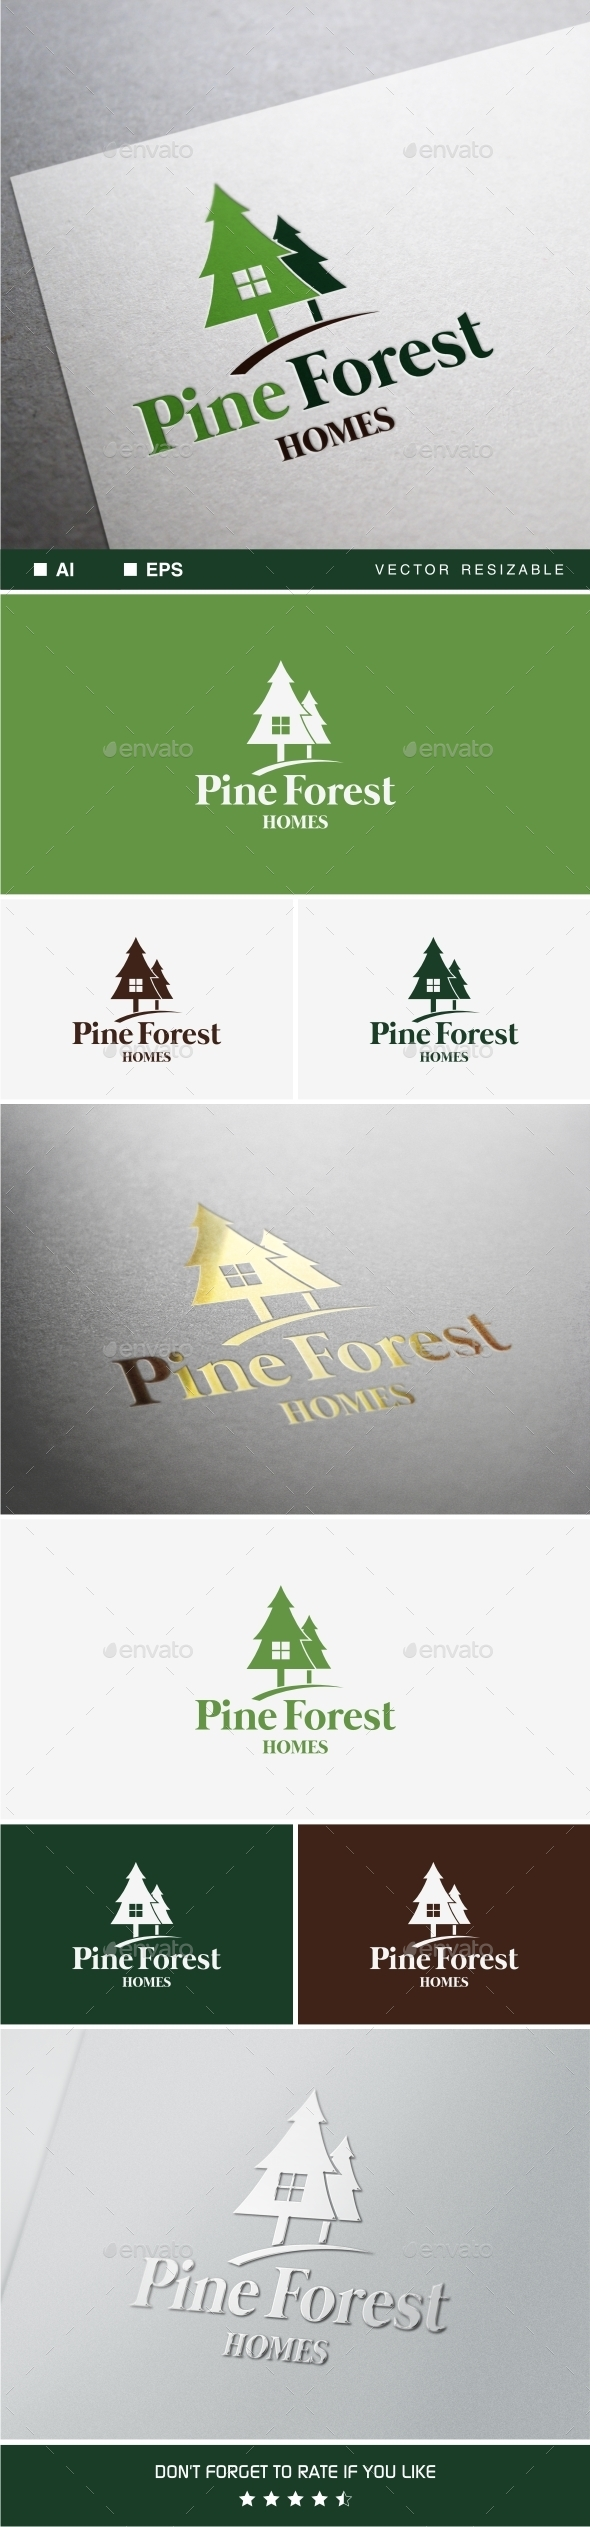 Pine Forest Home Logo - Buildings Logo Templates